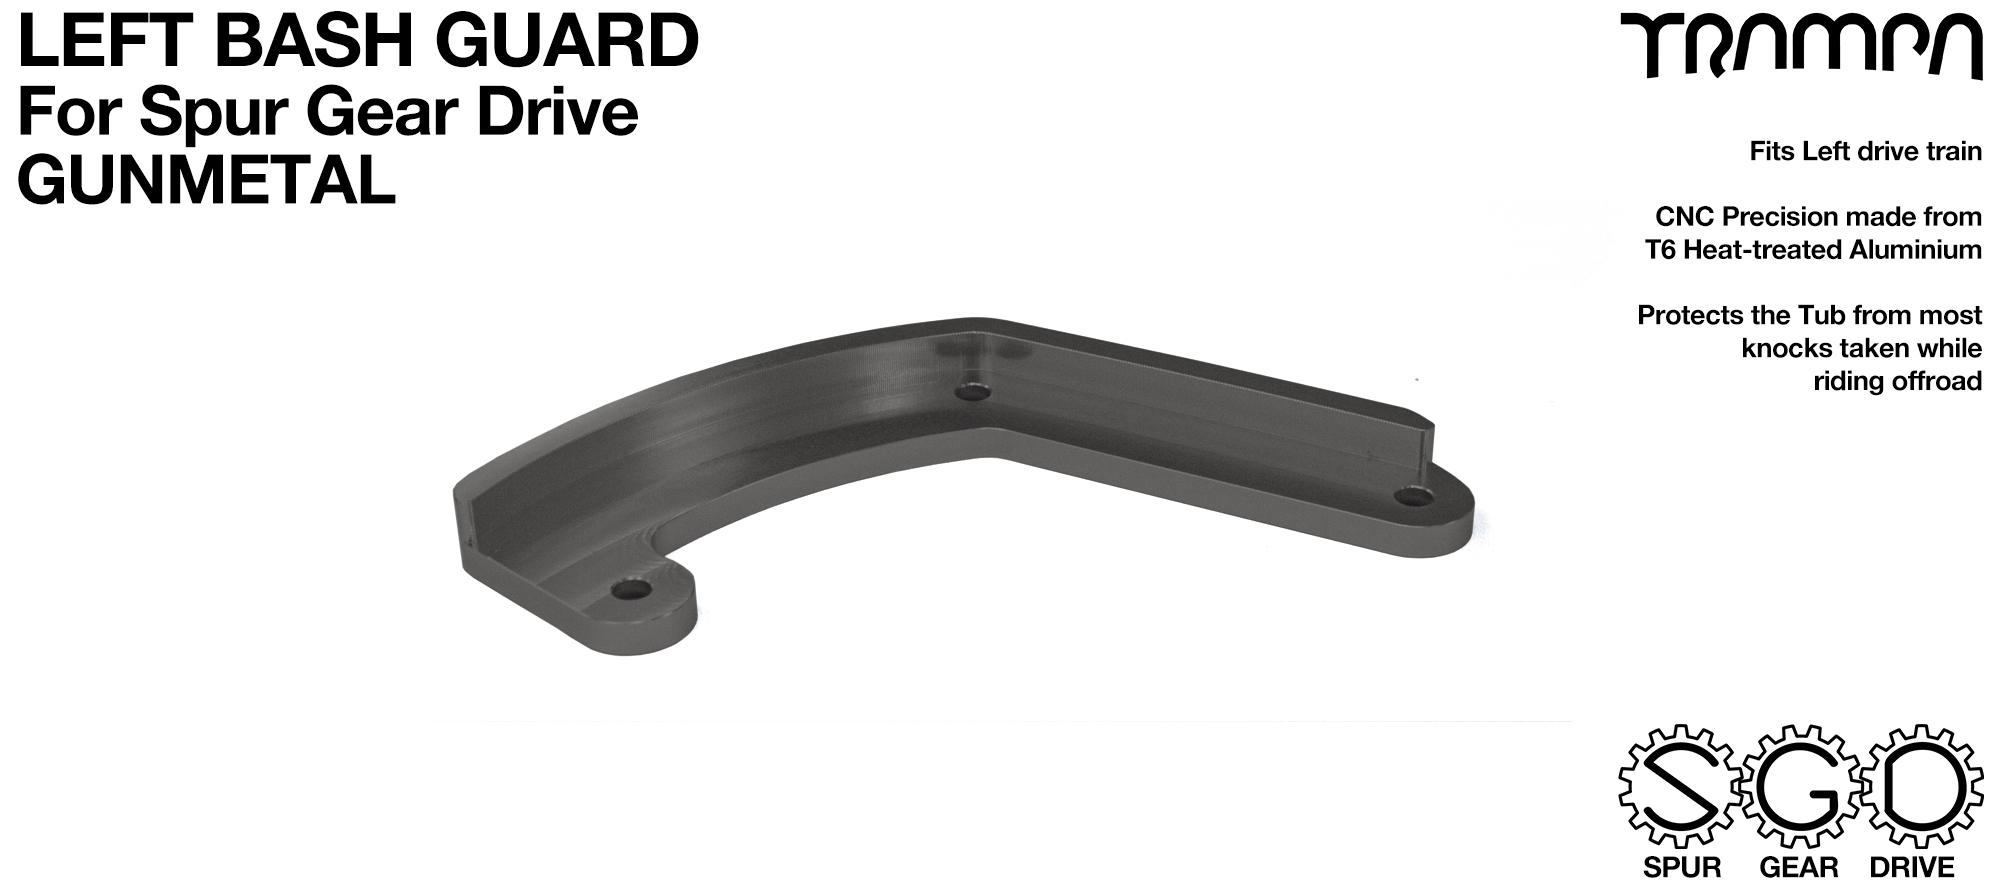 MkII Spur Gear Drive Bash Guard - LEFT Side - GUNMETAL